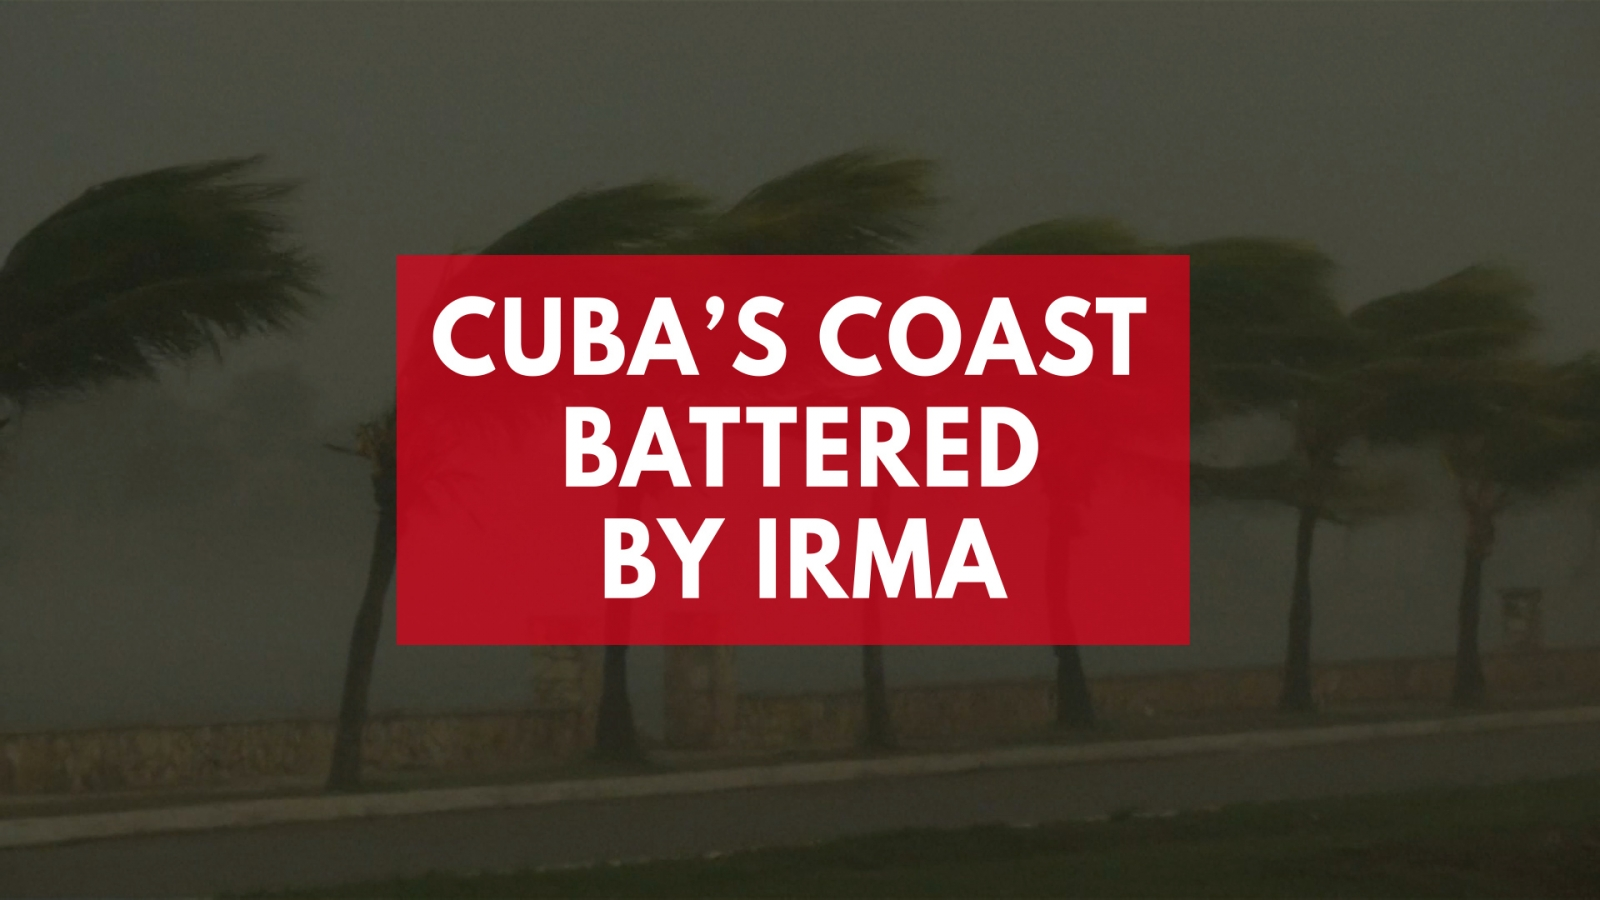 cubas-coast-battered-by-irma